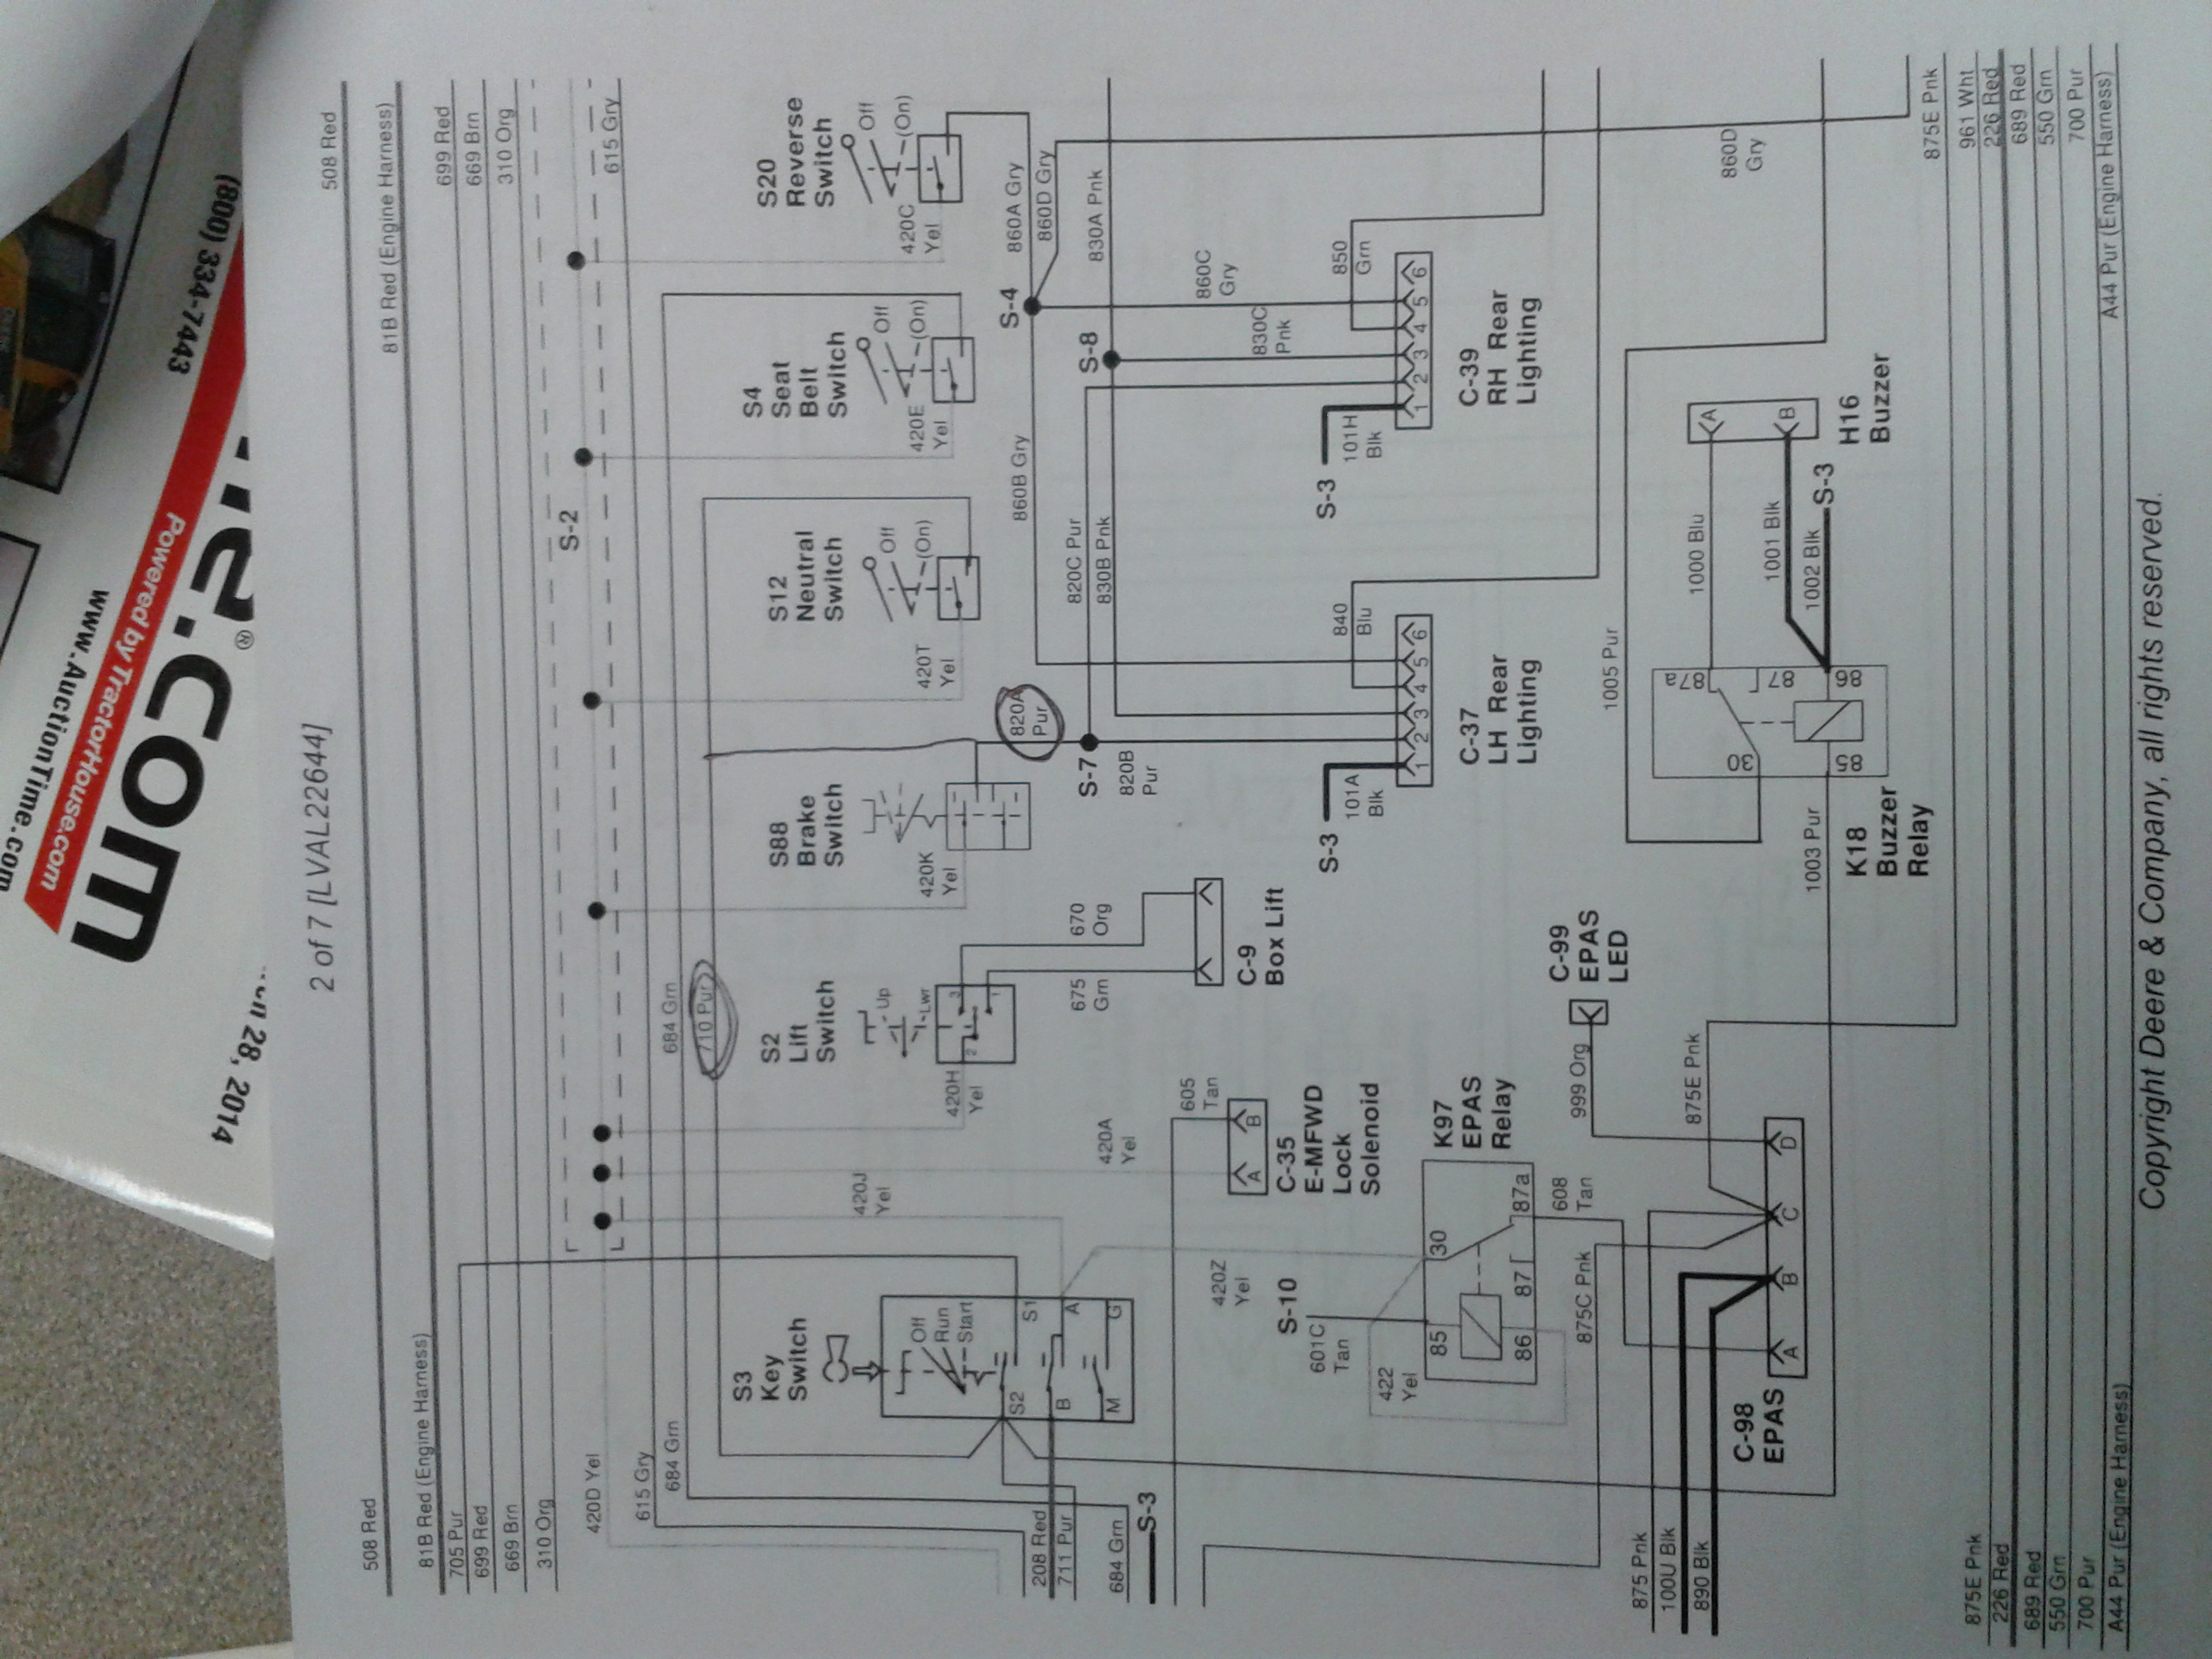 Gator Xuv 620i Wiring Diagram | Wiring Schematic Diagram ... on